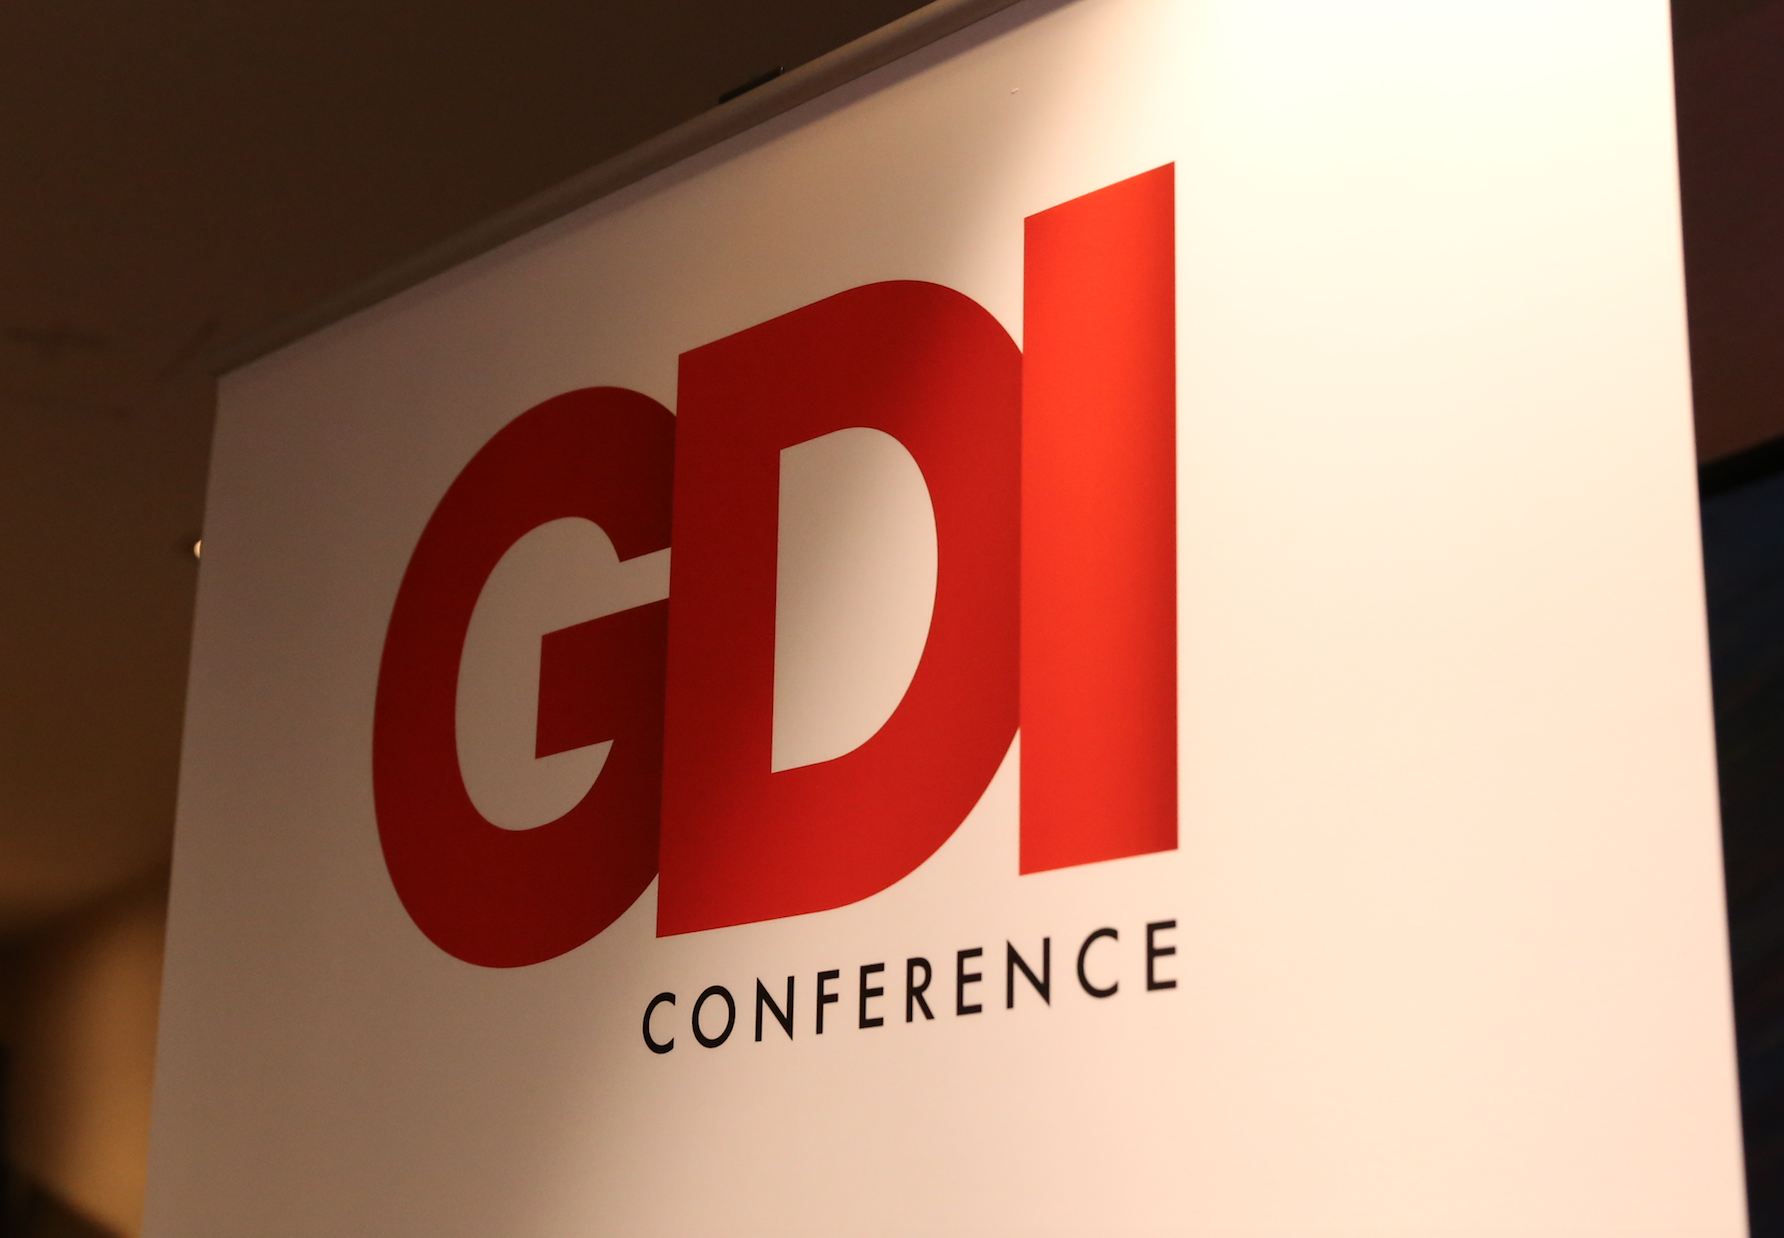 10 Things We Learned At GDI London 2017